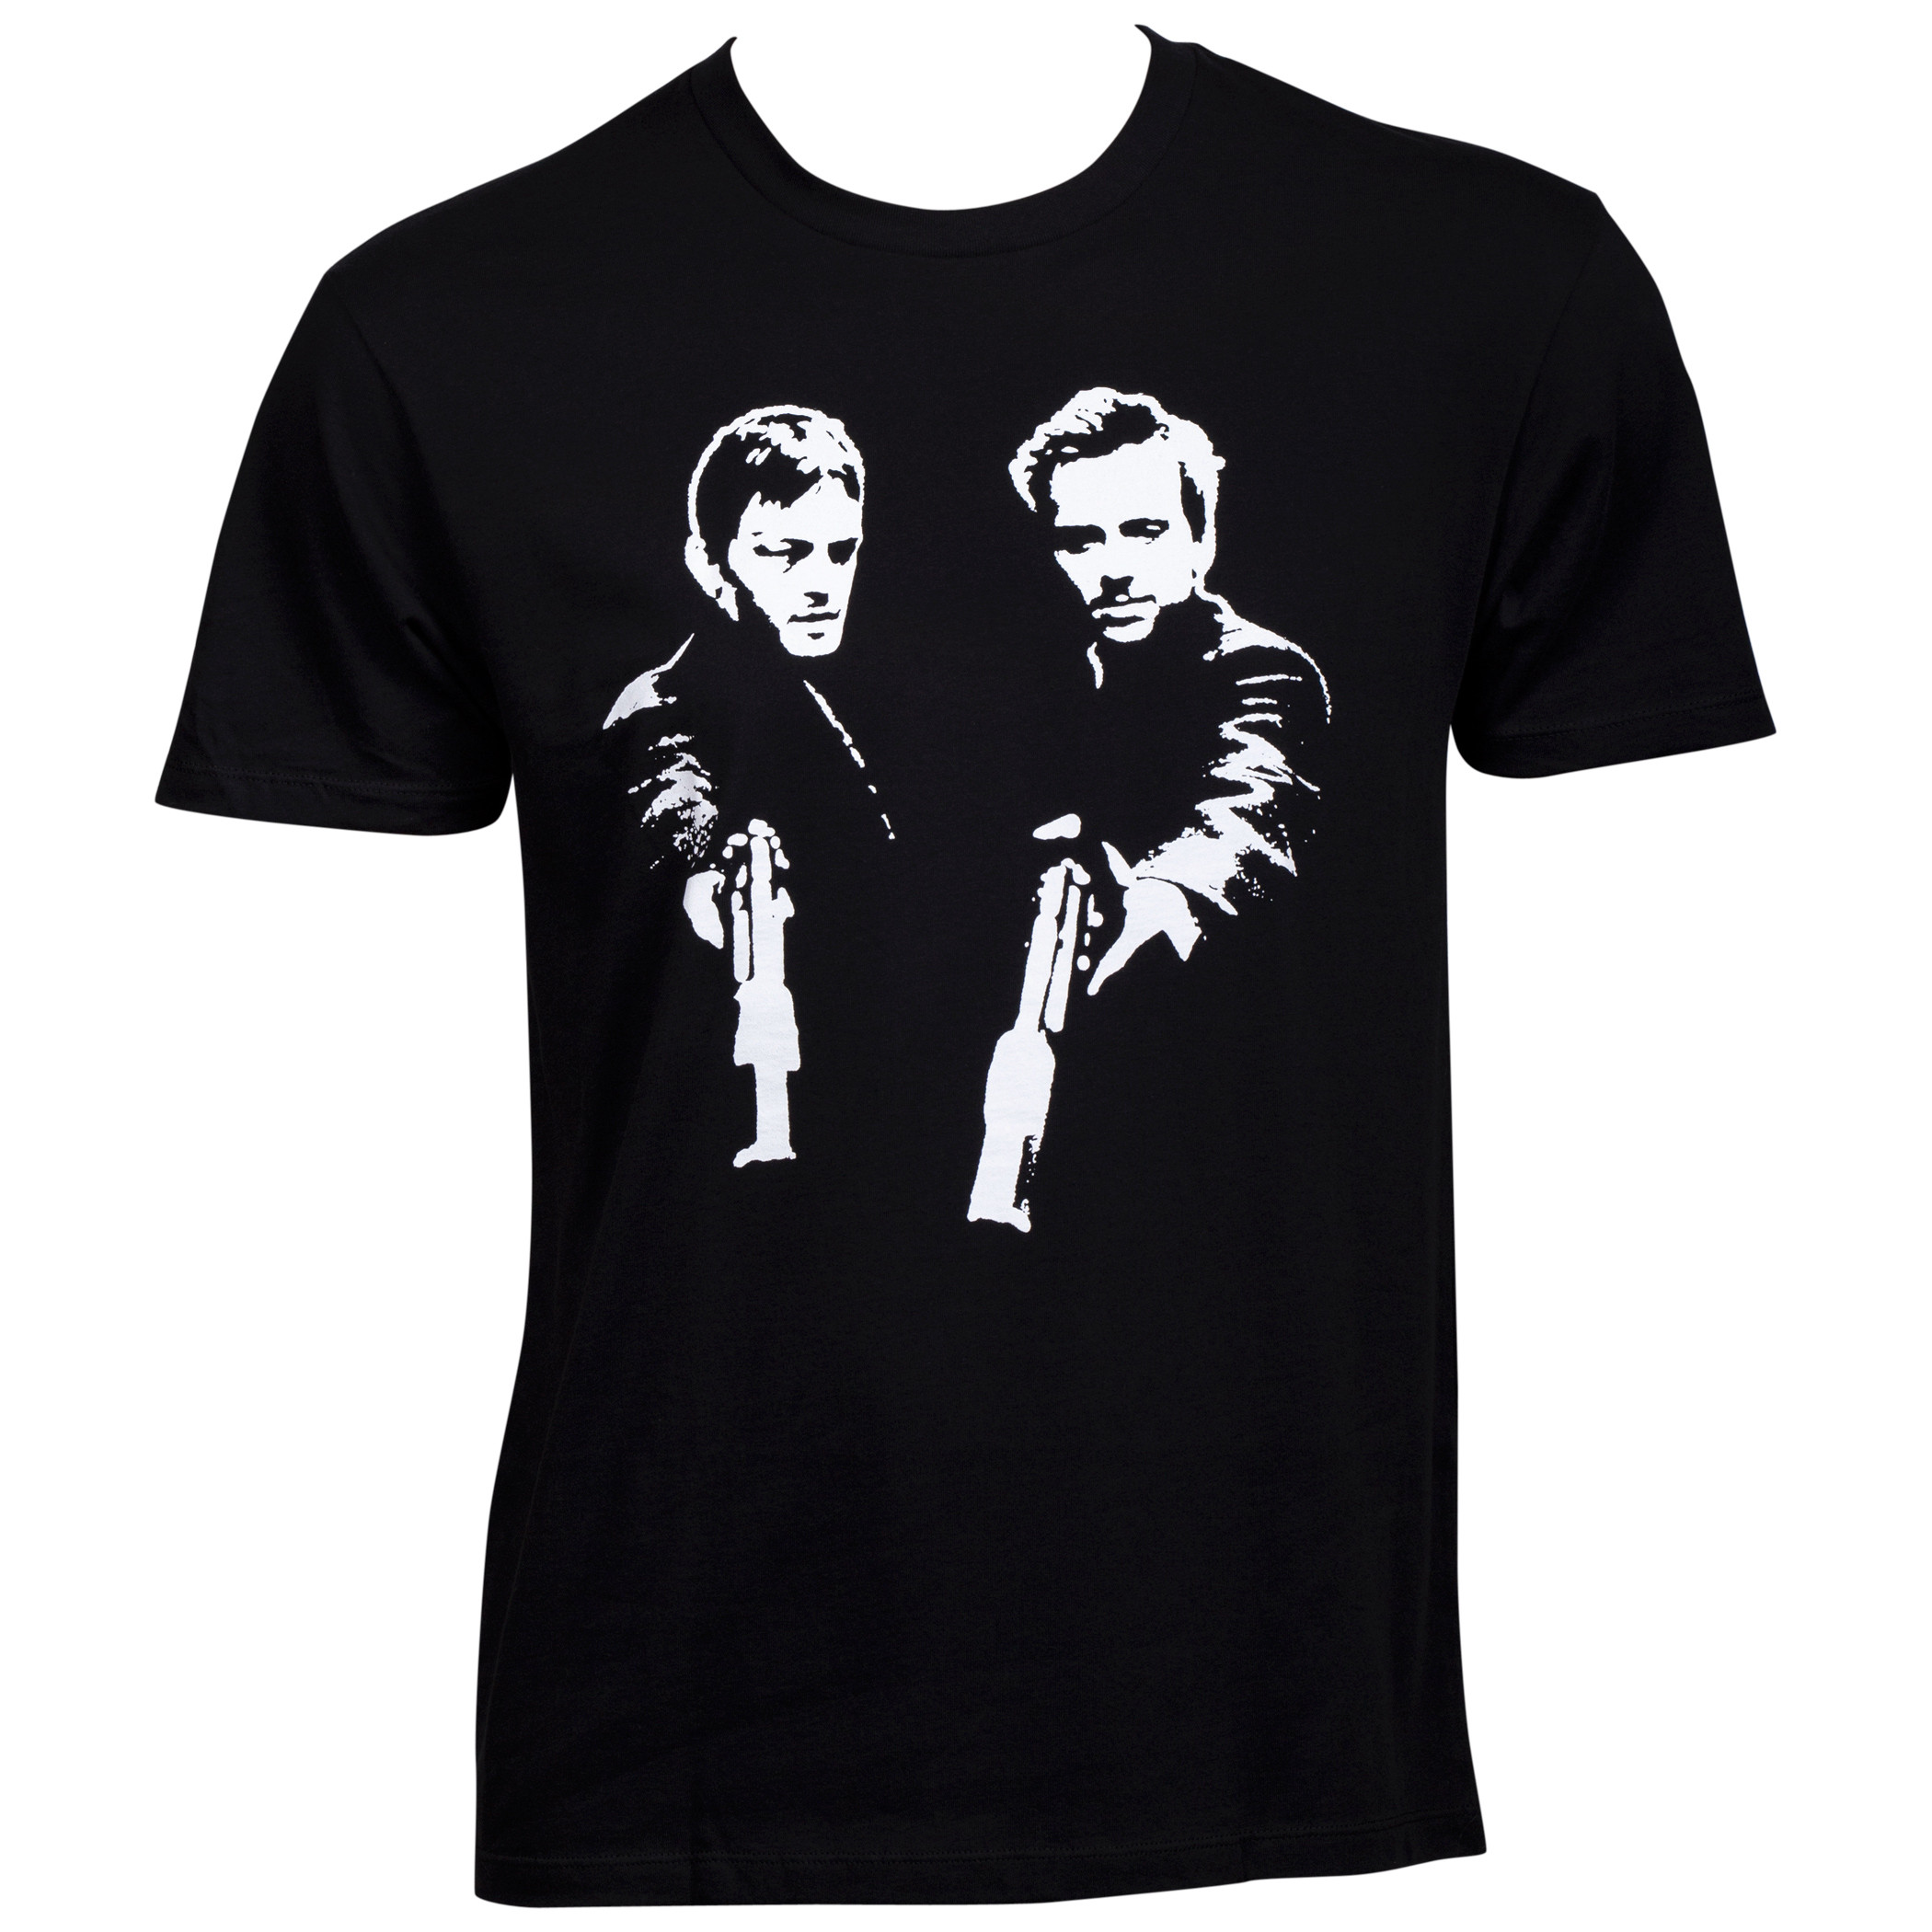 Boondocks Saints Prayer T-Shirt